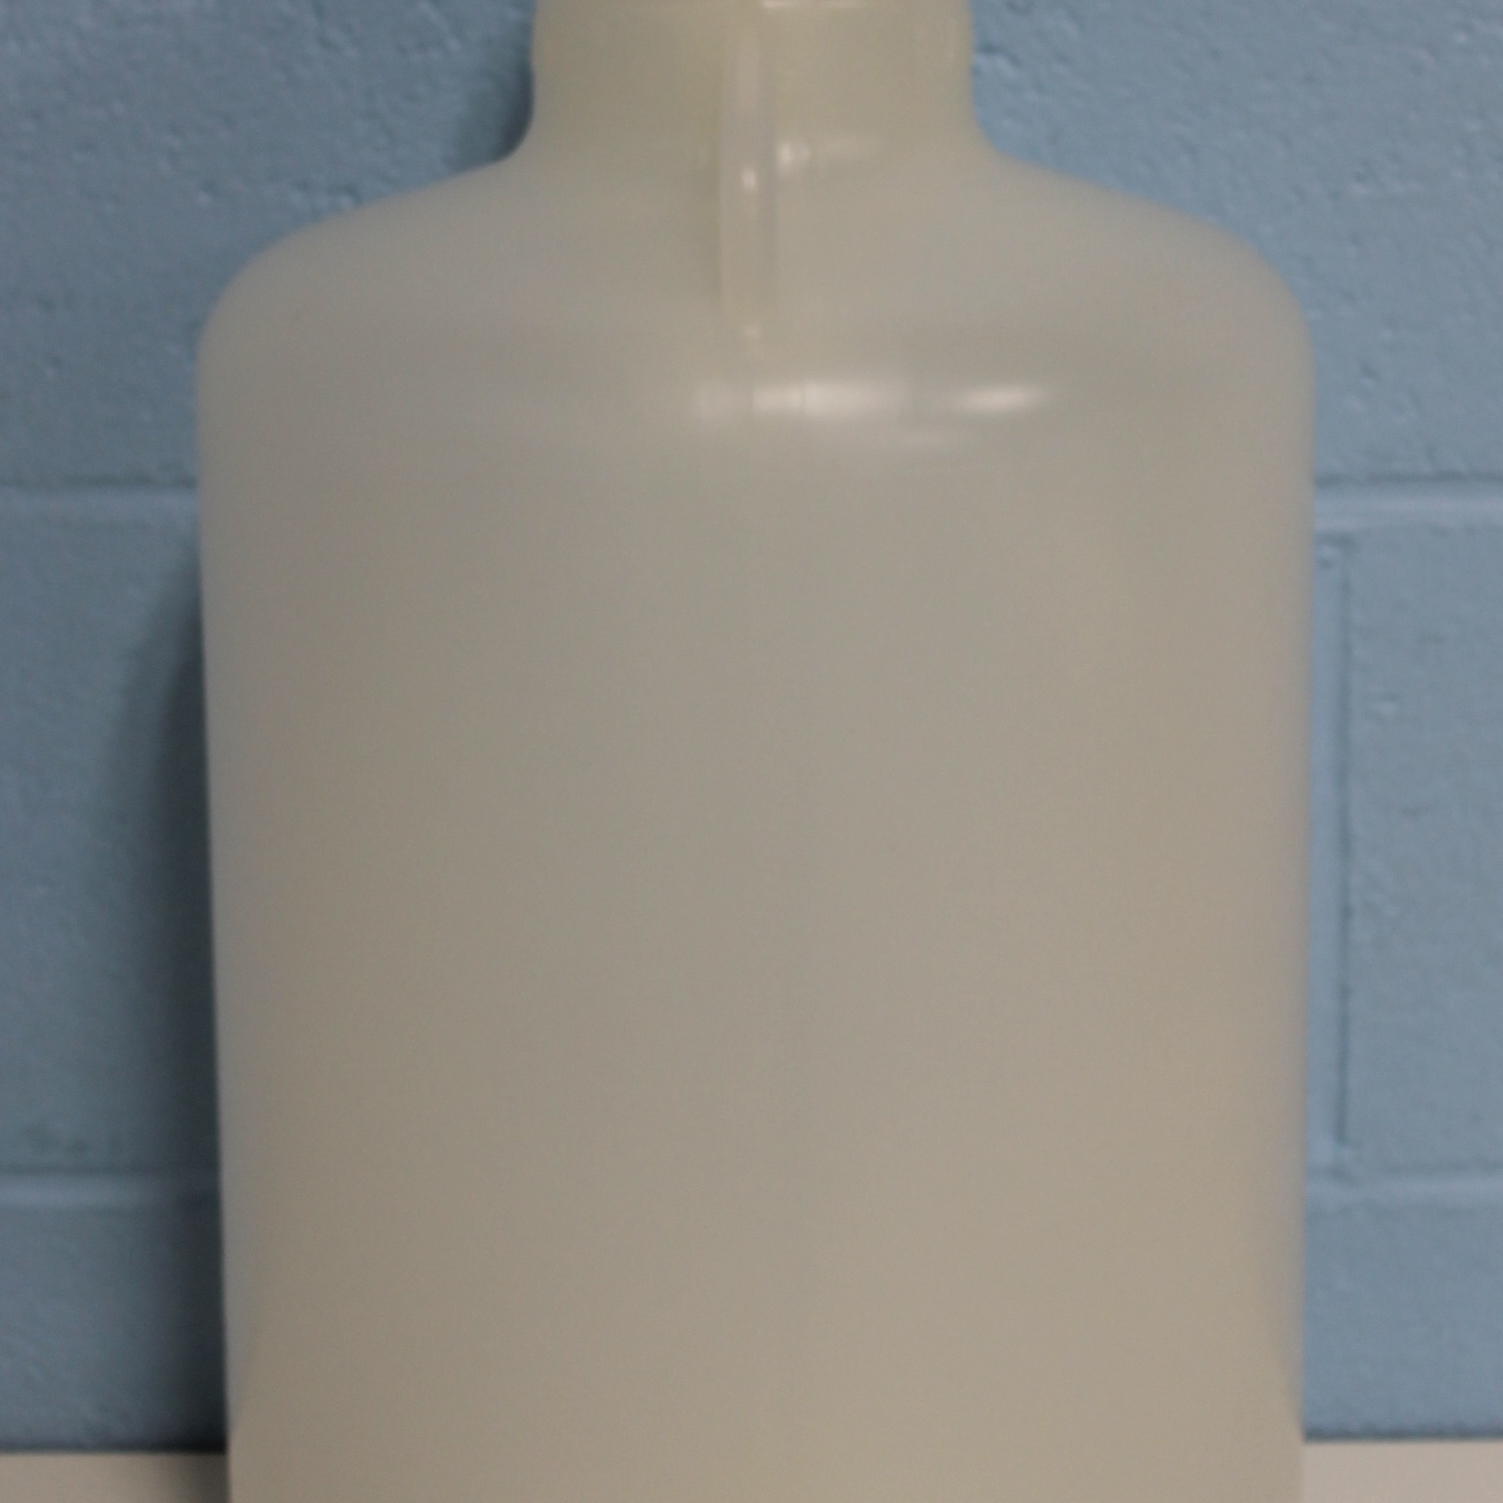 Nalgene 2640-0050 Polypropylene 20L Autoclavable Carboy with Sanitary Flange Image